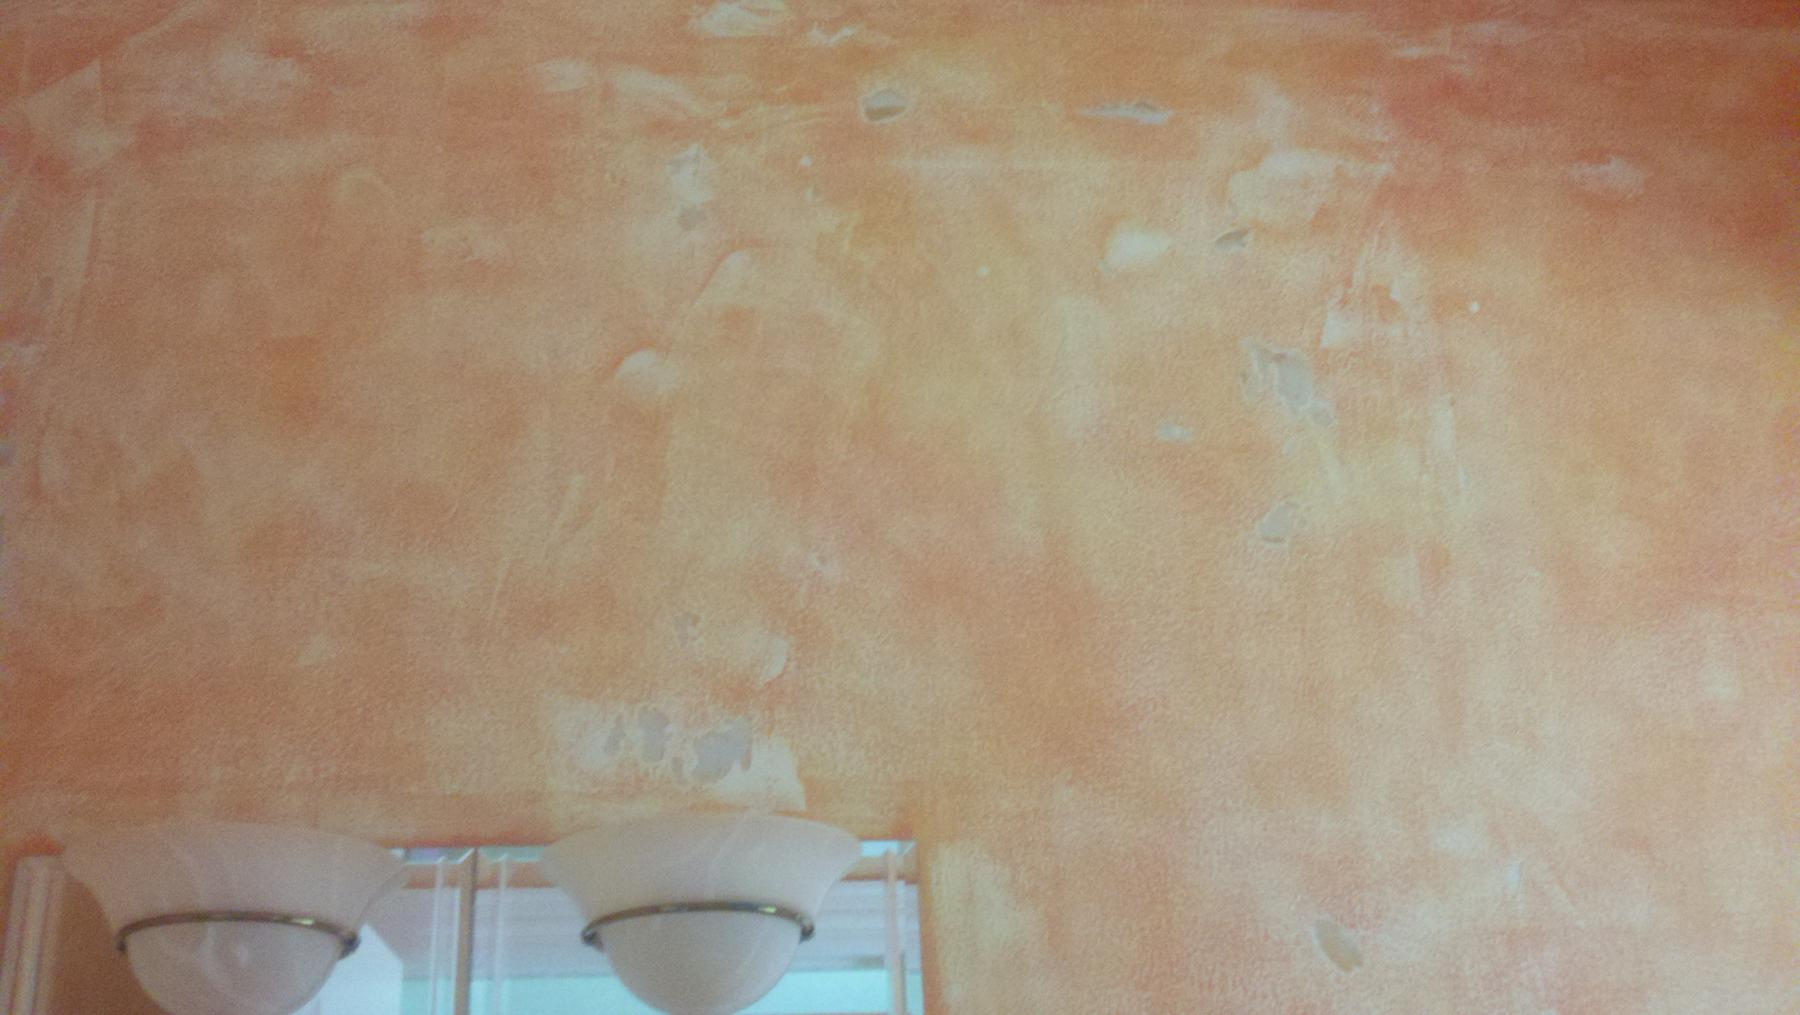 Download Removing Wallpaper Glue Residue From Walls Gallery